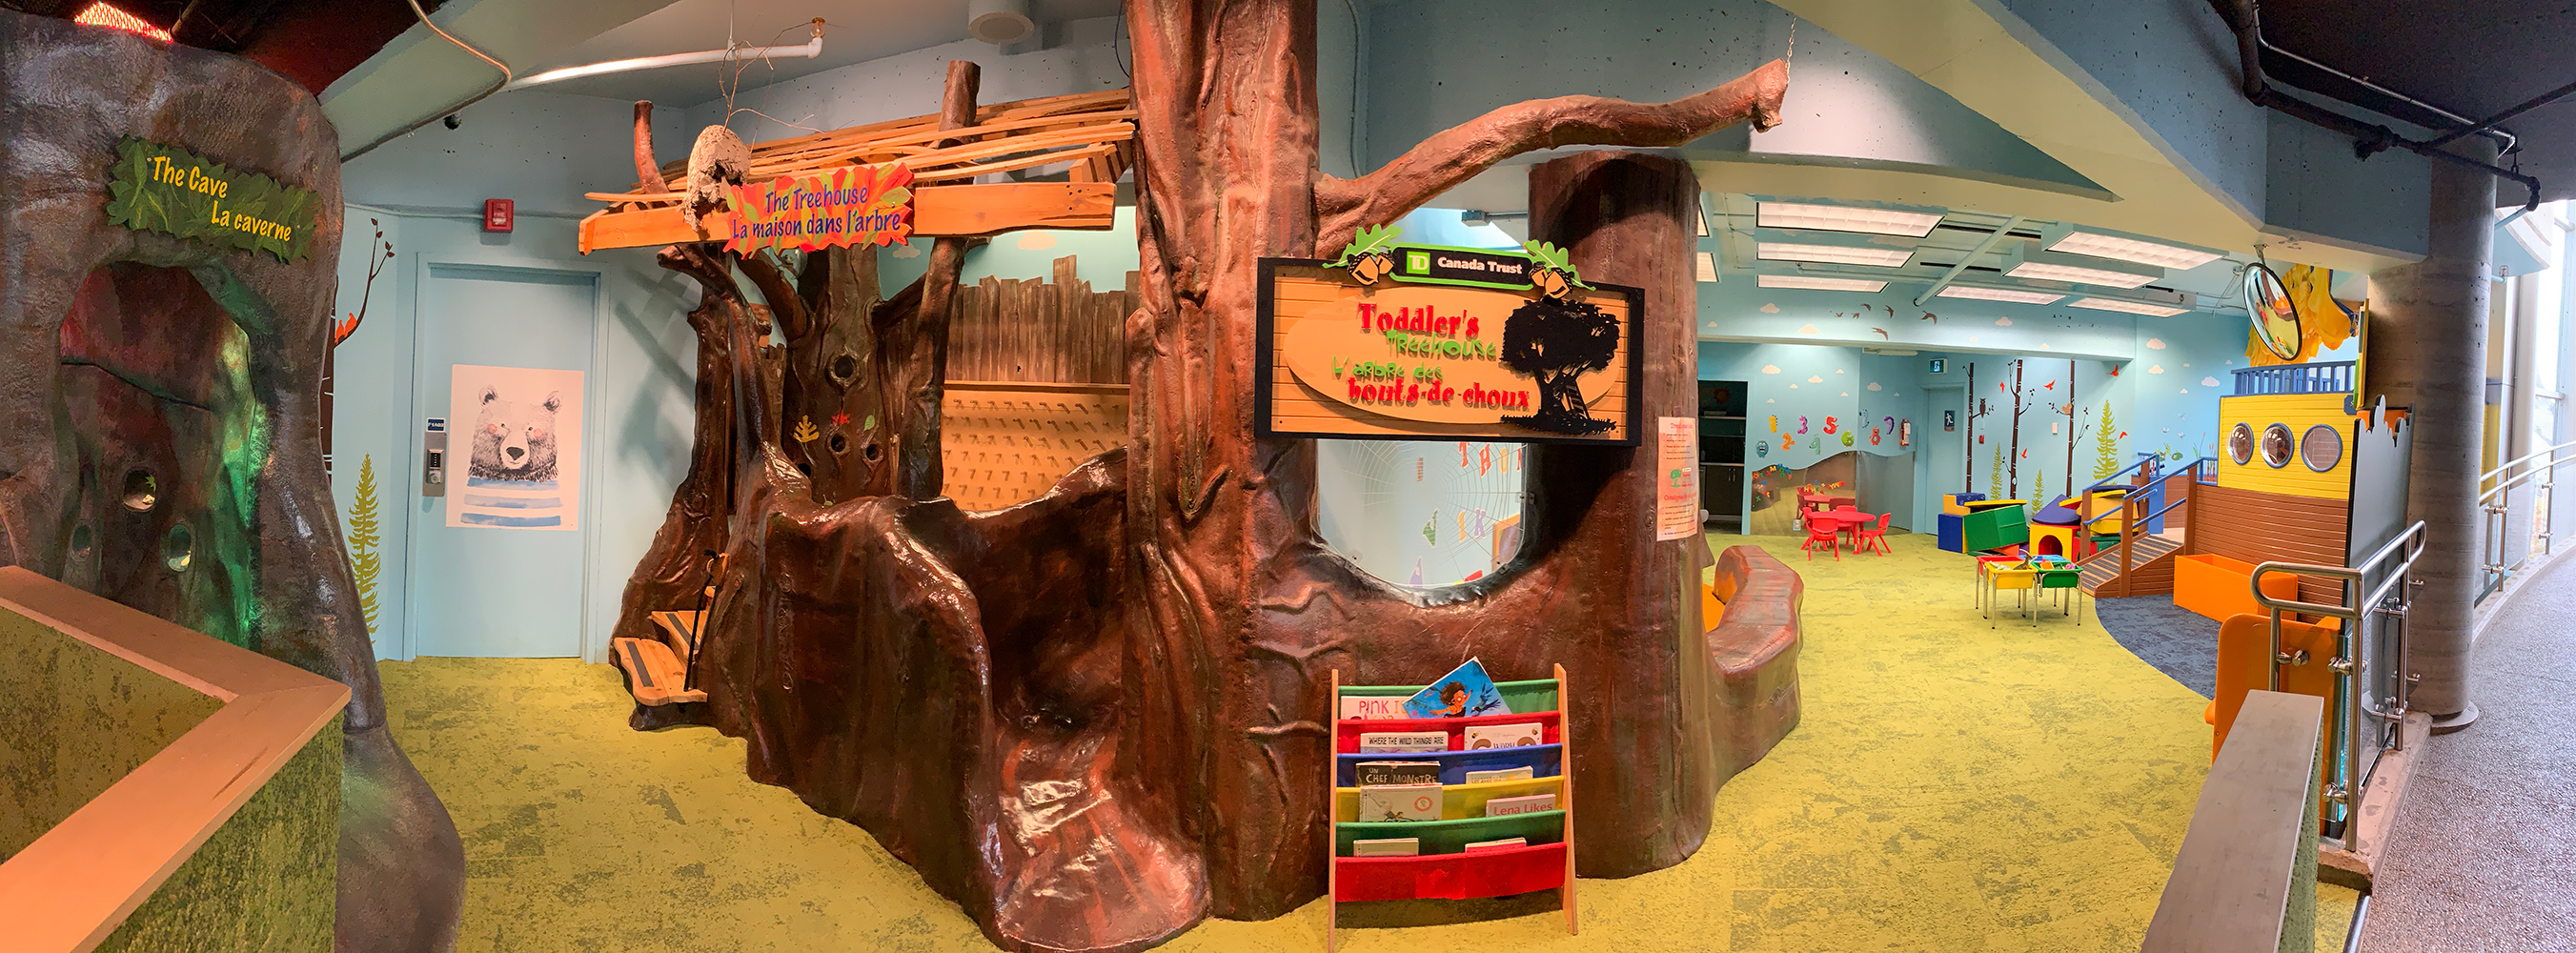 td canada trust toddler's treehouse